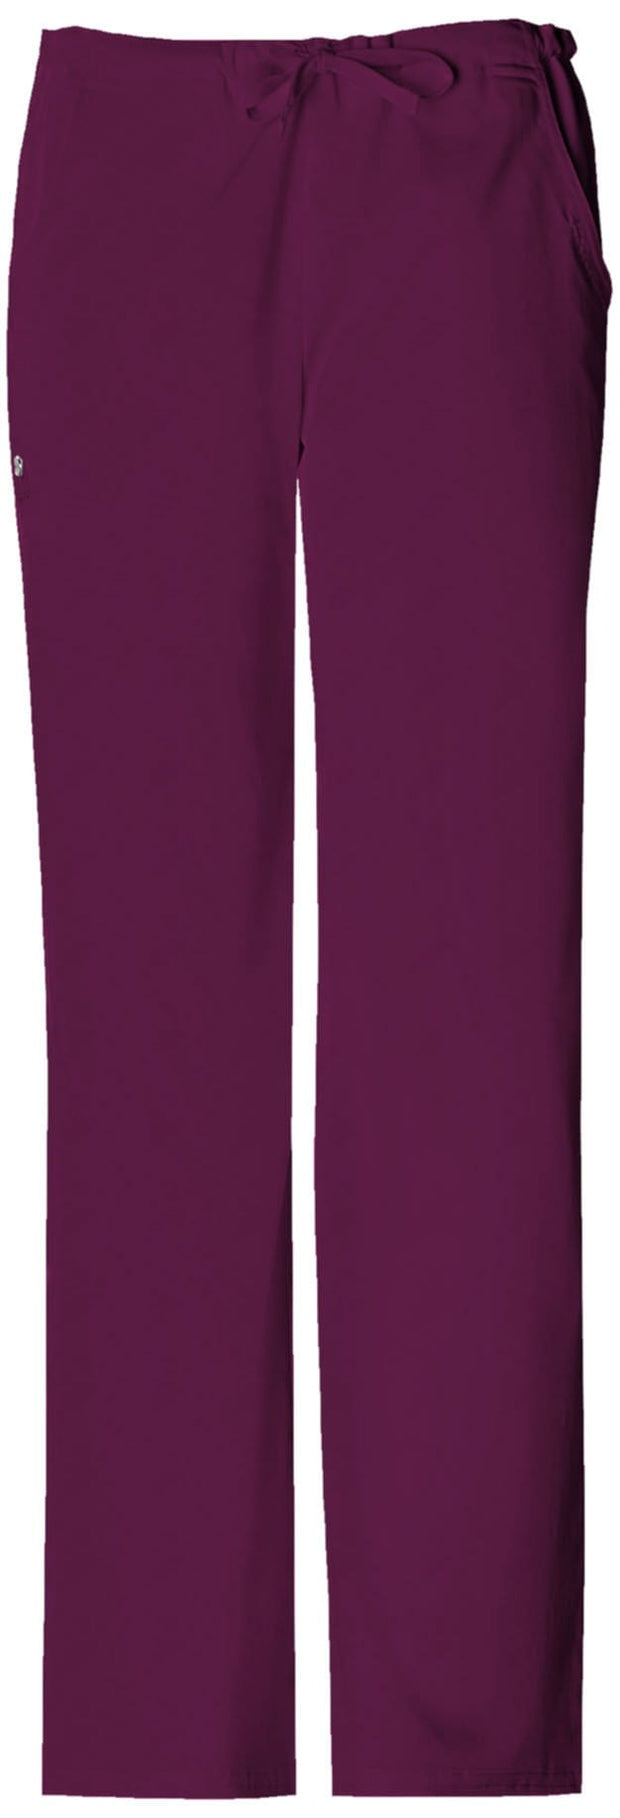 Cherokee Luxe Women's Low Rise Straight Leg Drawstring Pant #1066